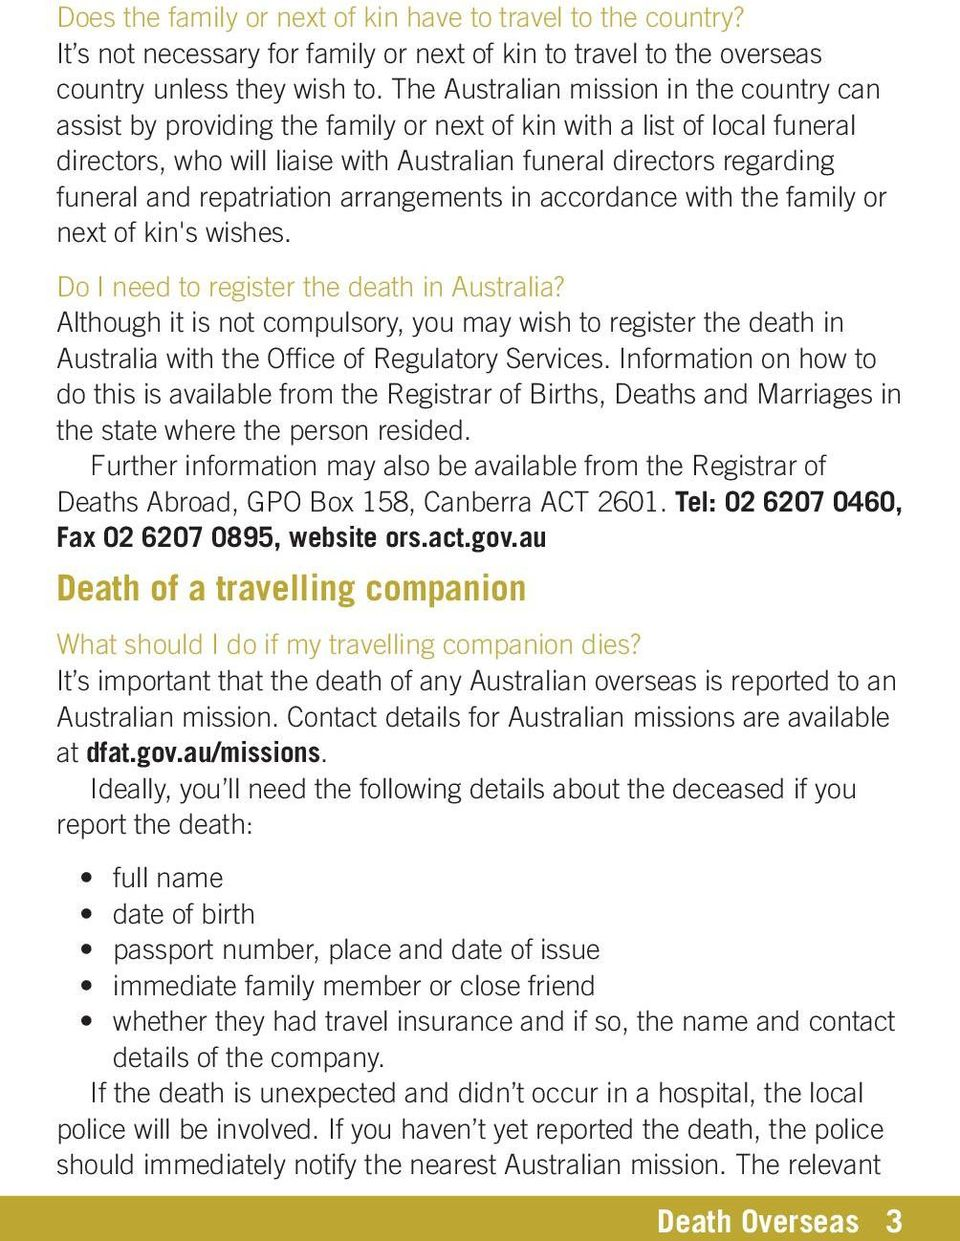 repatriation arrangements in accordance with the family or next of kin's wishes. Do I need to register the death in Australia?